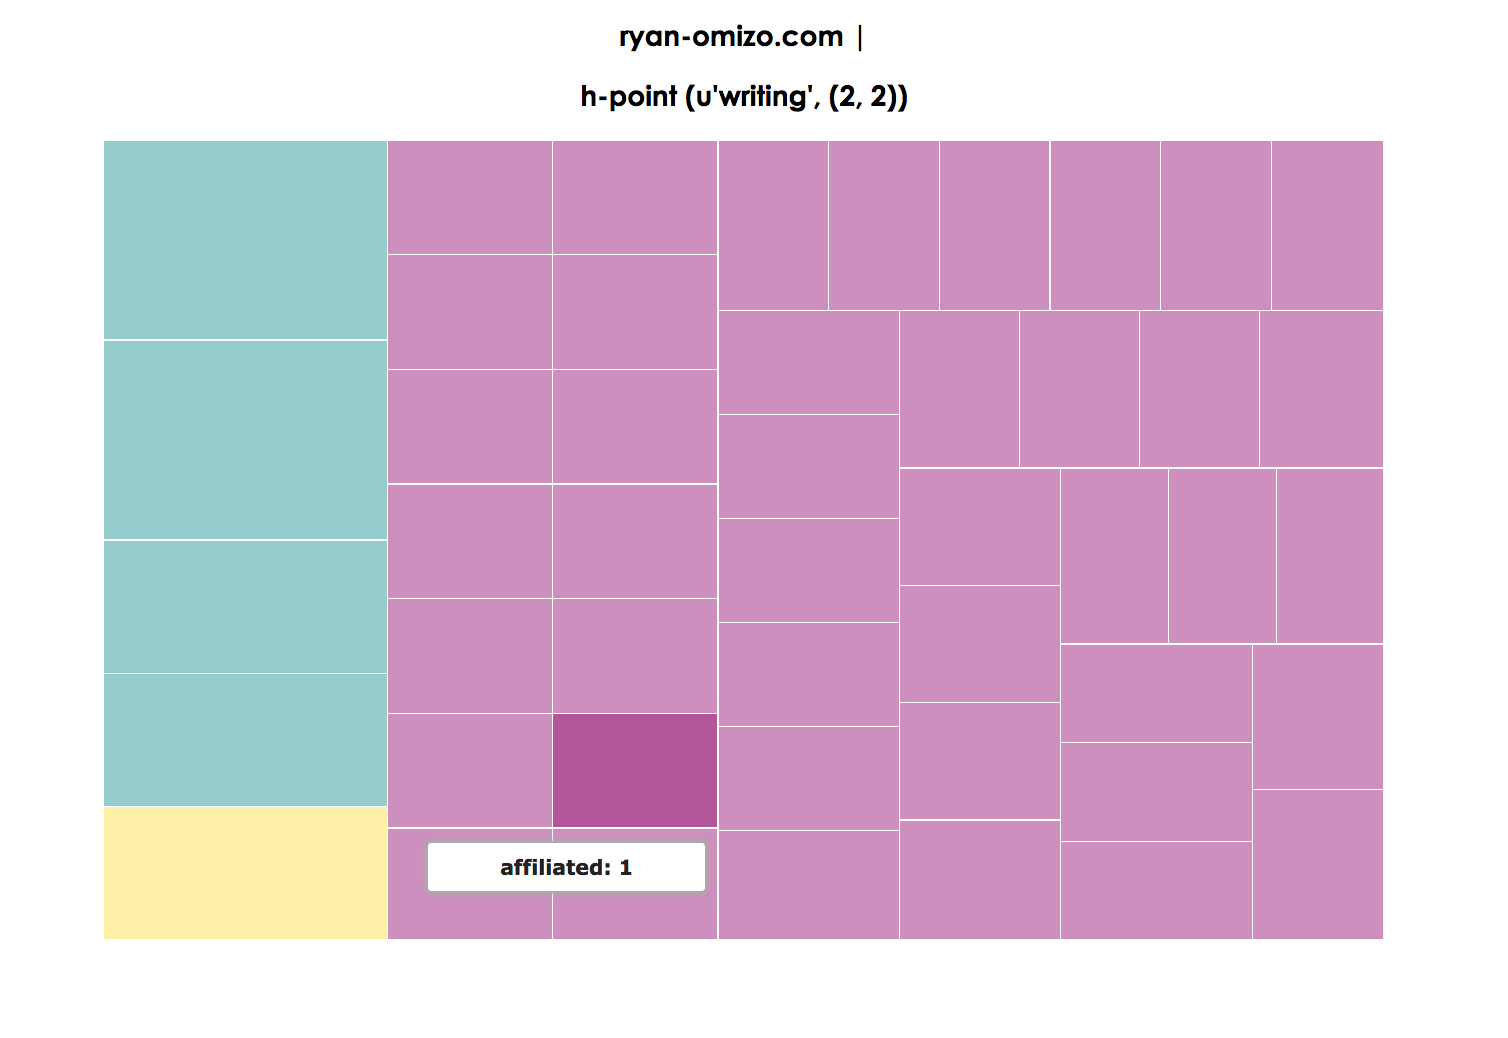 Figure 11. Treemap visualization of Research page, with 'graph' as the h-point (2,2) and 'human,' 'computational,' 'how,' and 'research' as the top rank-frequency (1,3)